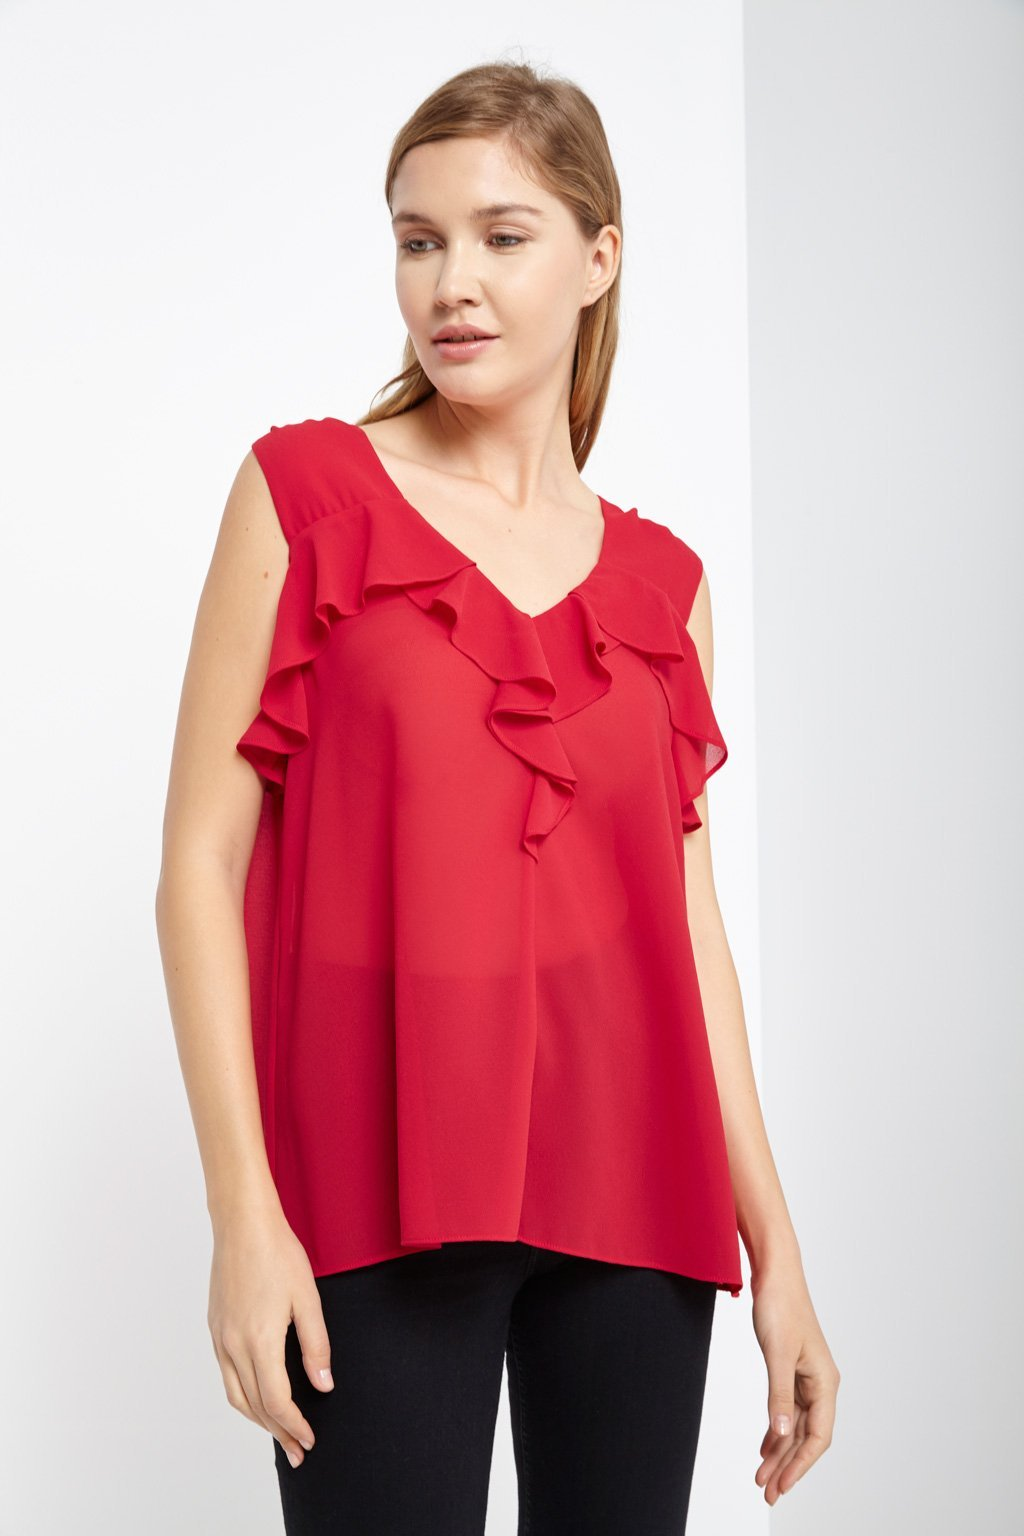 Poshsquare Tops S / Red Lima Ruffle Tie Top